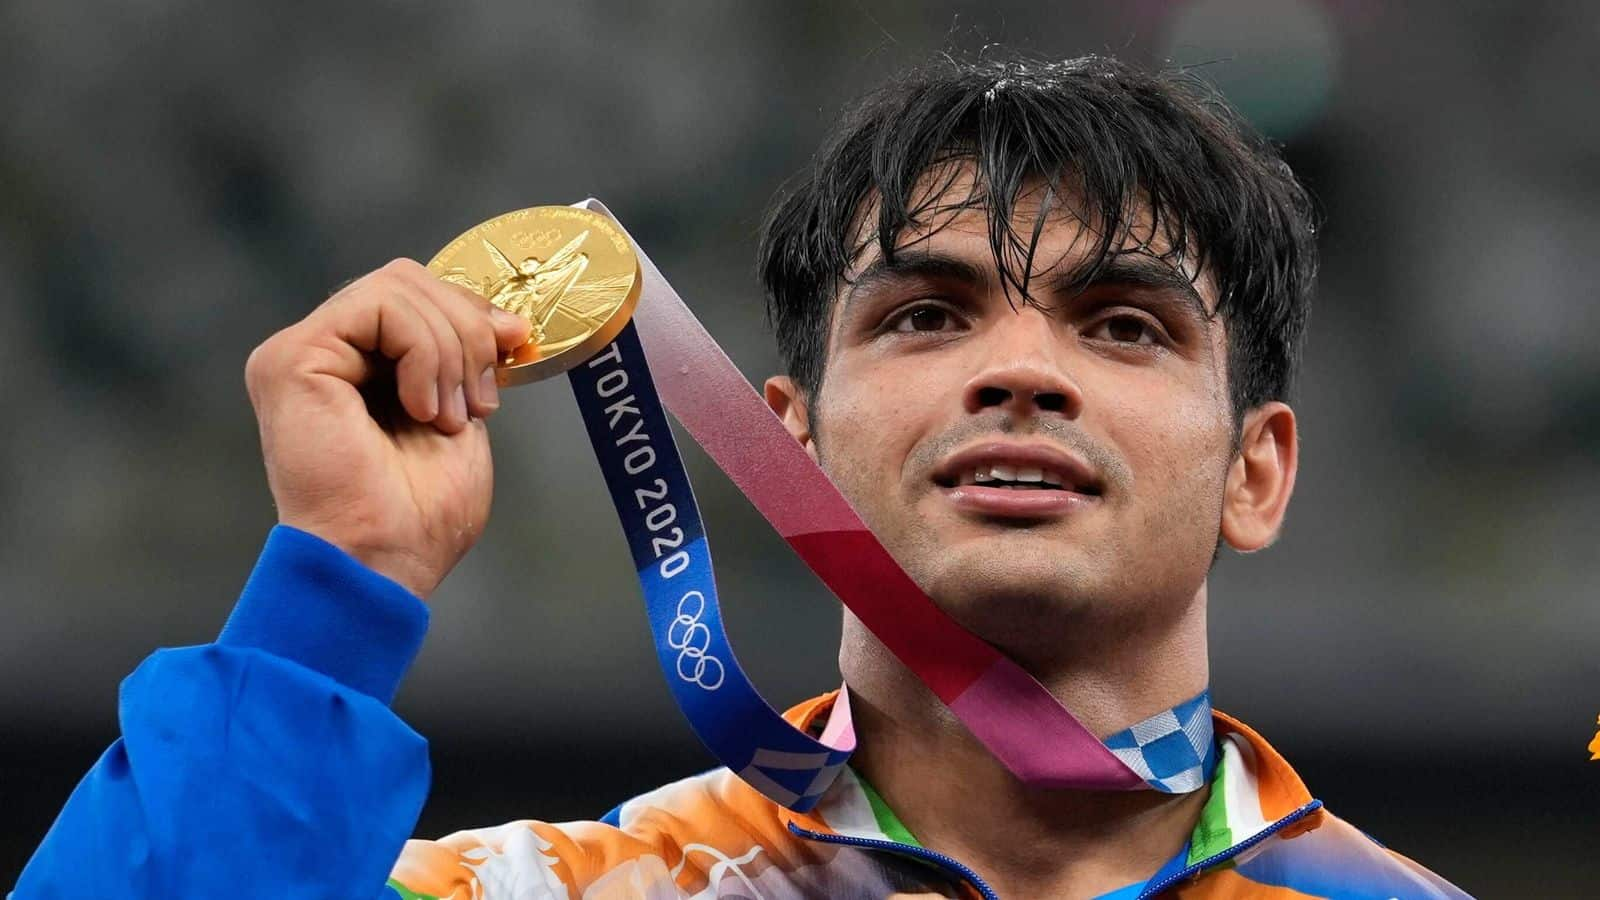 Neeraj Chopra: From chubby kid trying to lose weight to Olympic gold winner